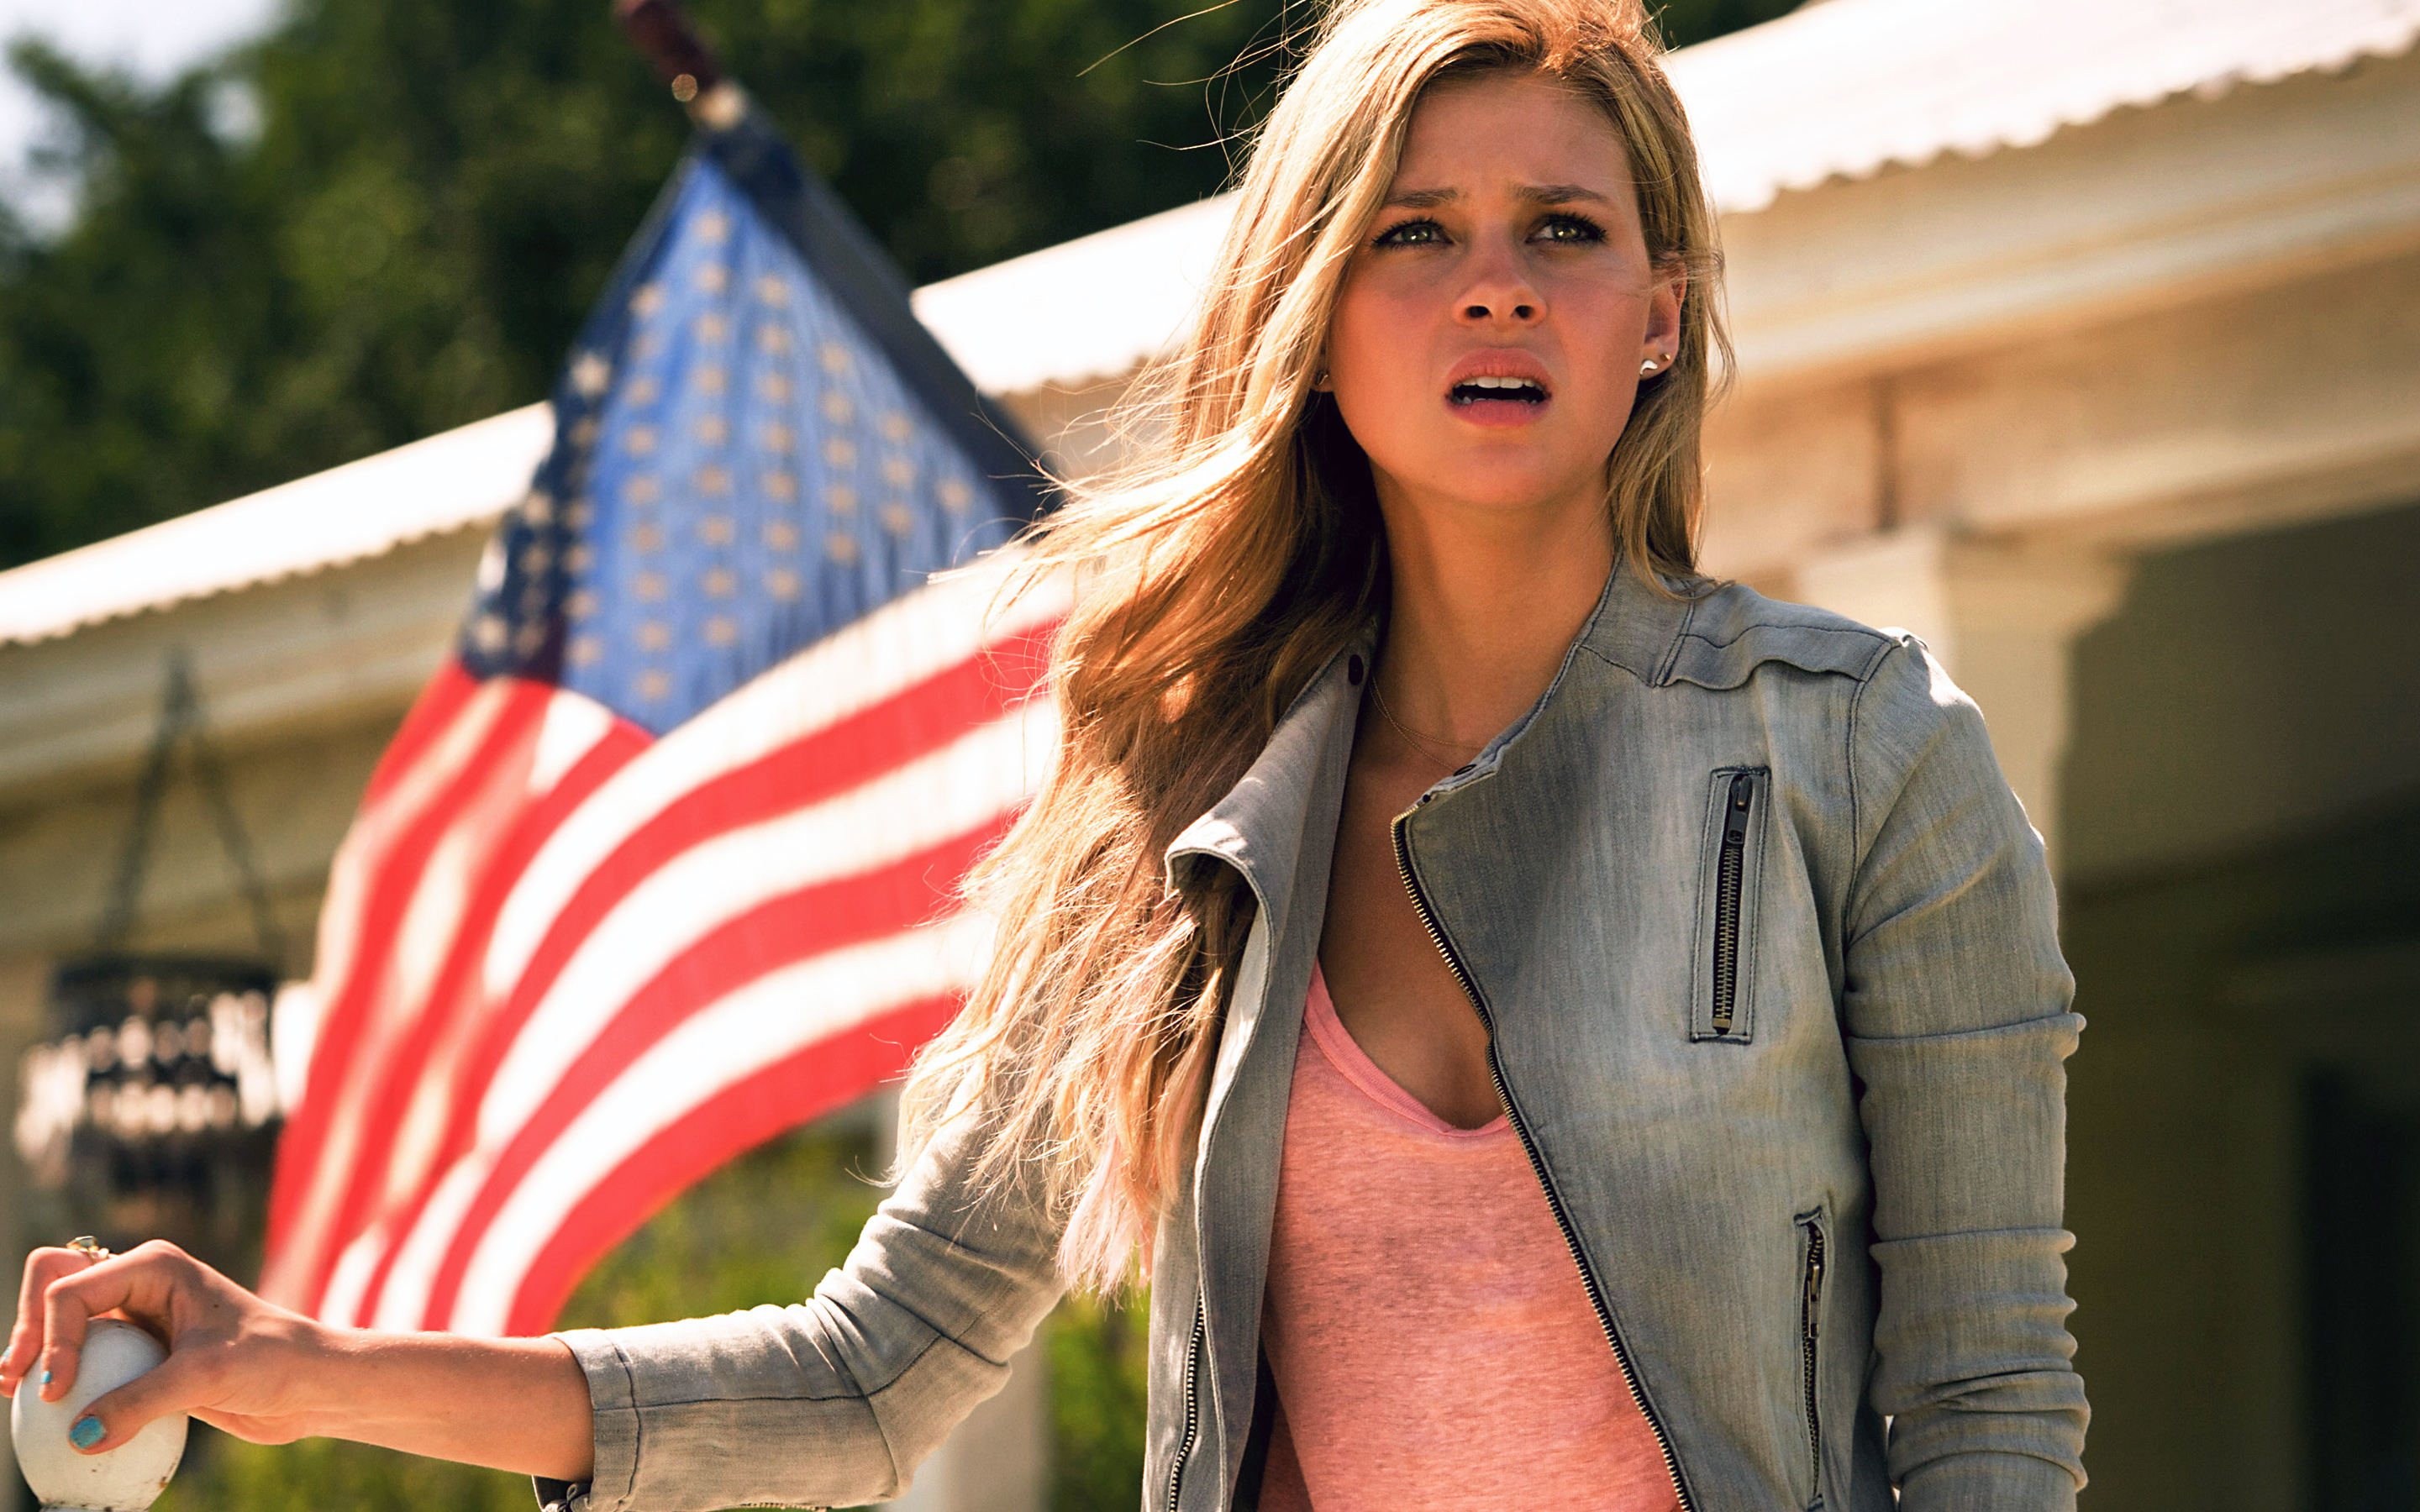 HD Wallpapers Nicola Peltz in Transformers Age of Extinction